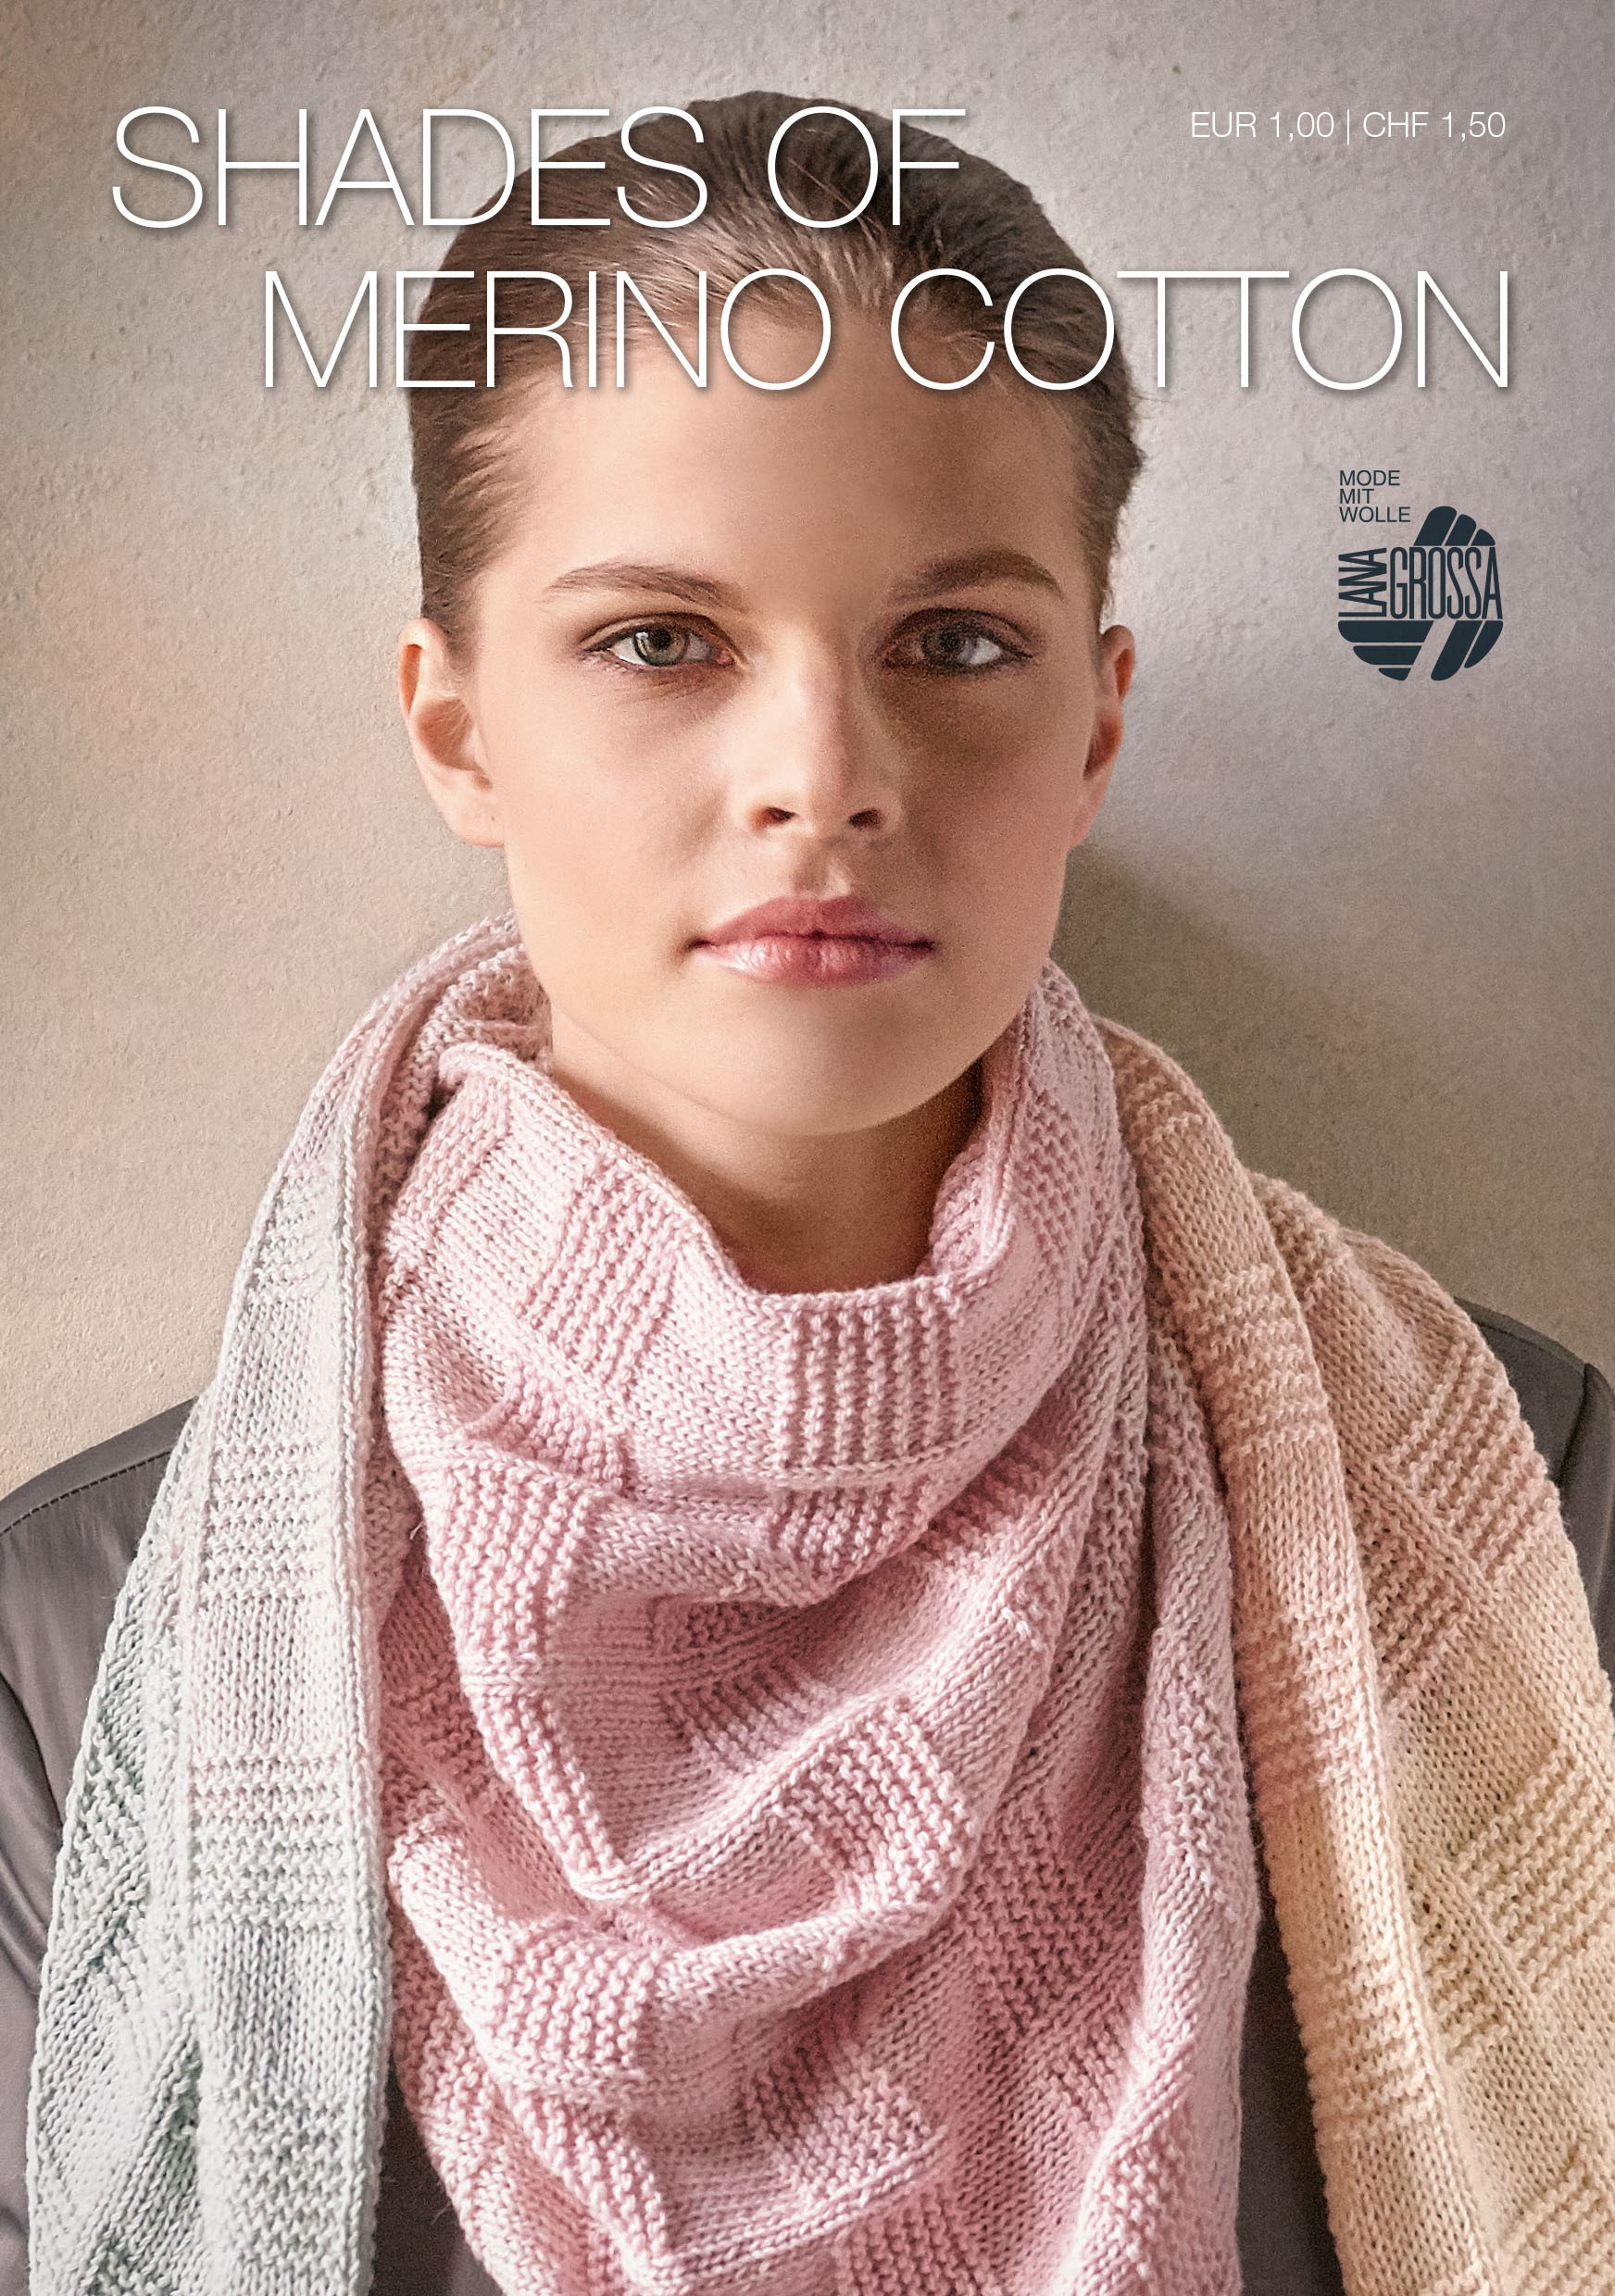 Lana Grossa SHADES OF MERINO COTTON Flyer - German Edition